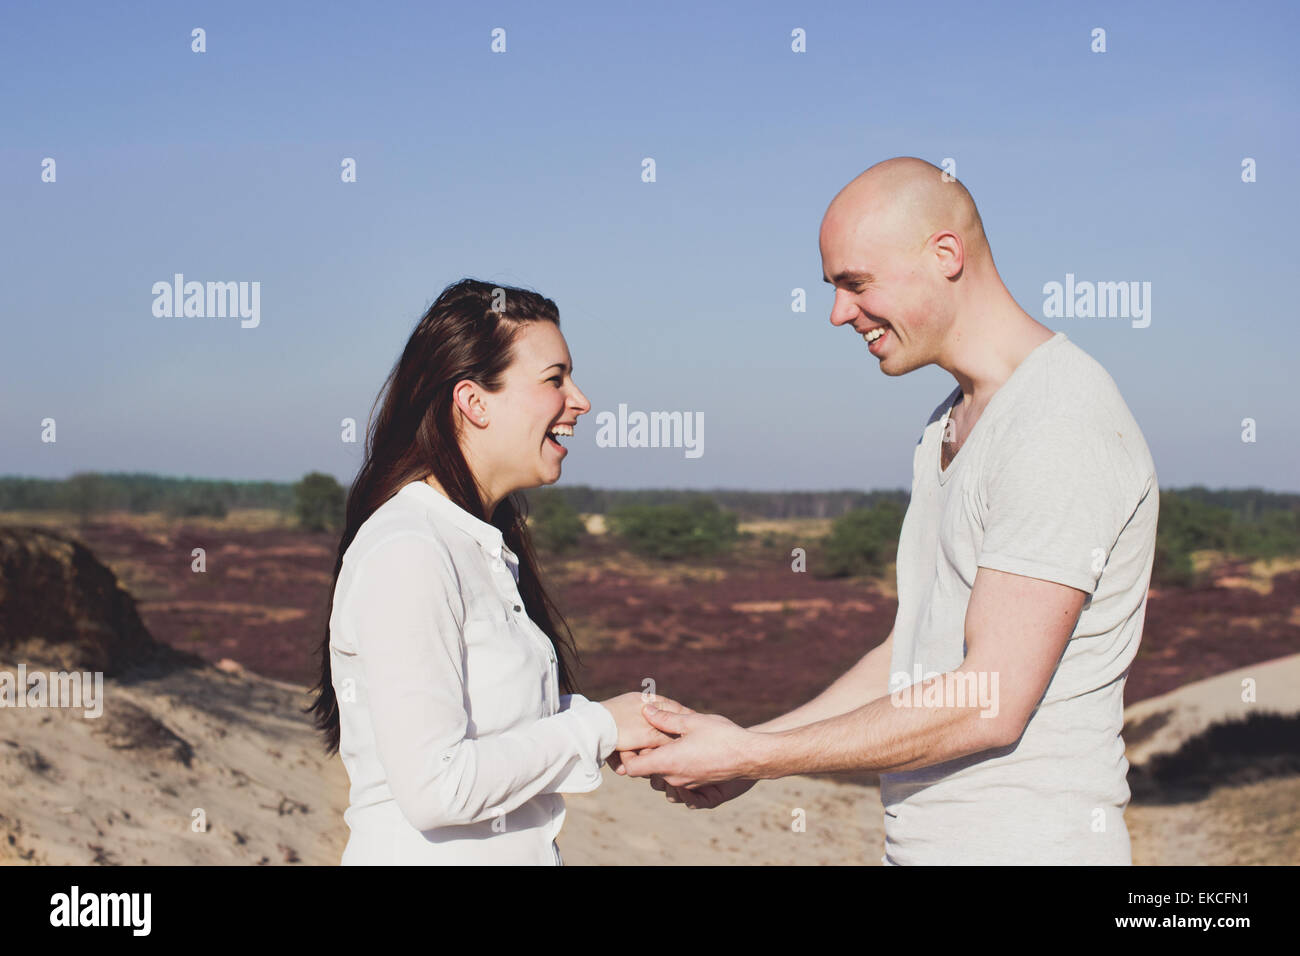 Portrait of a couple holding hands, laughing - Stock Image